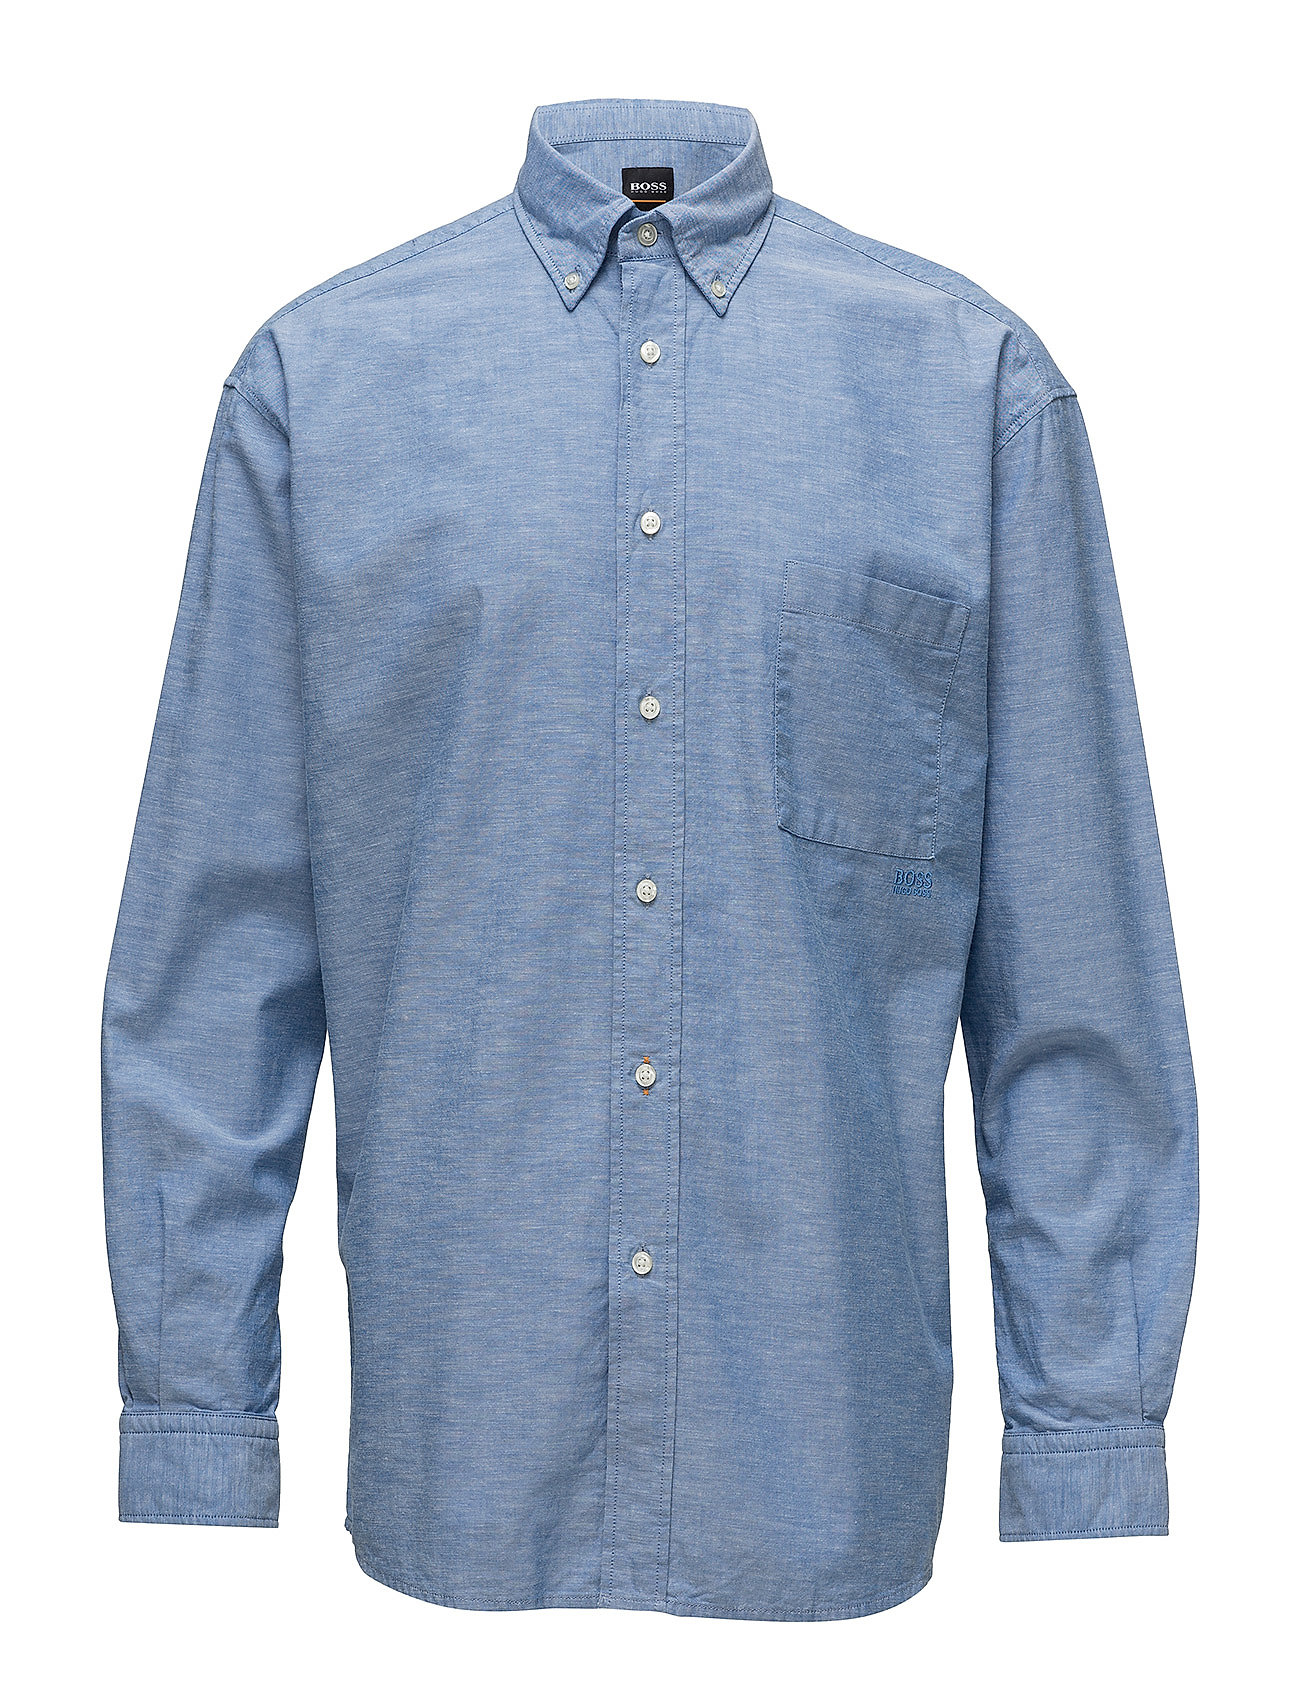 Boss Casual Wear Leight - BRIGHT BLUE